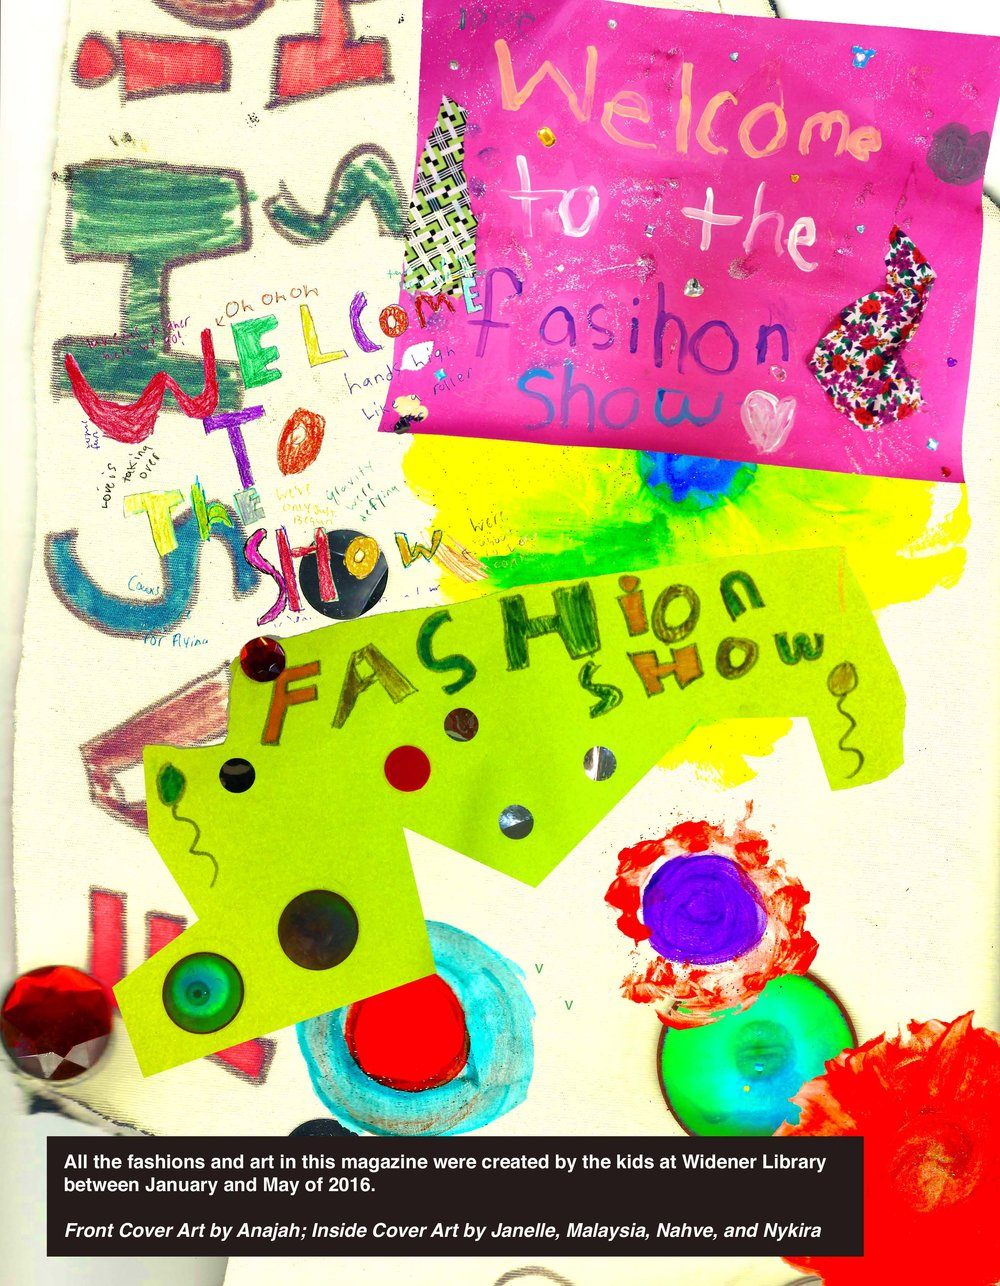 Fashion magazine created with youth at the Widener Library